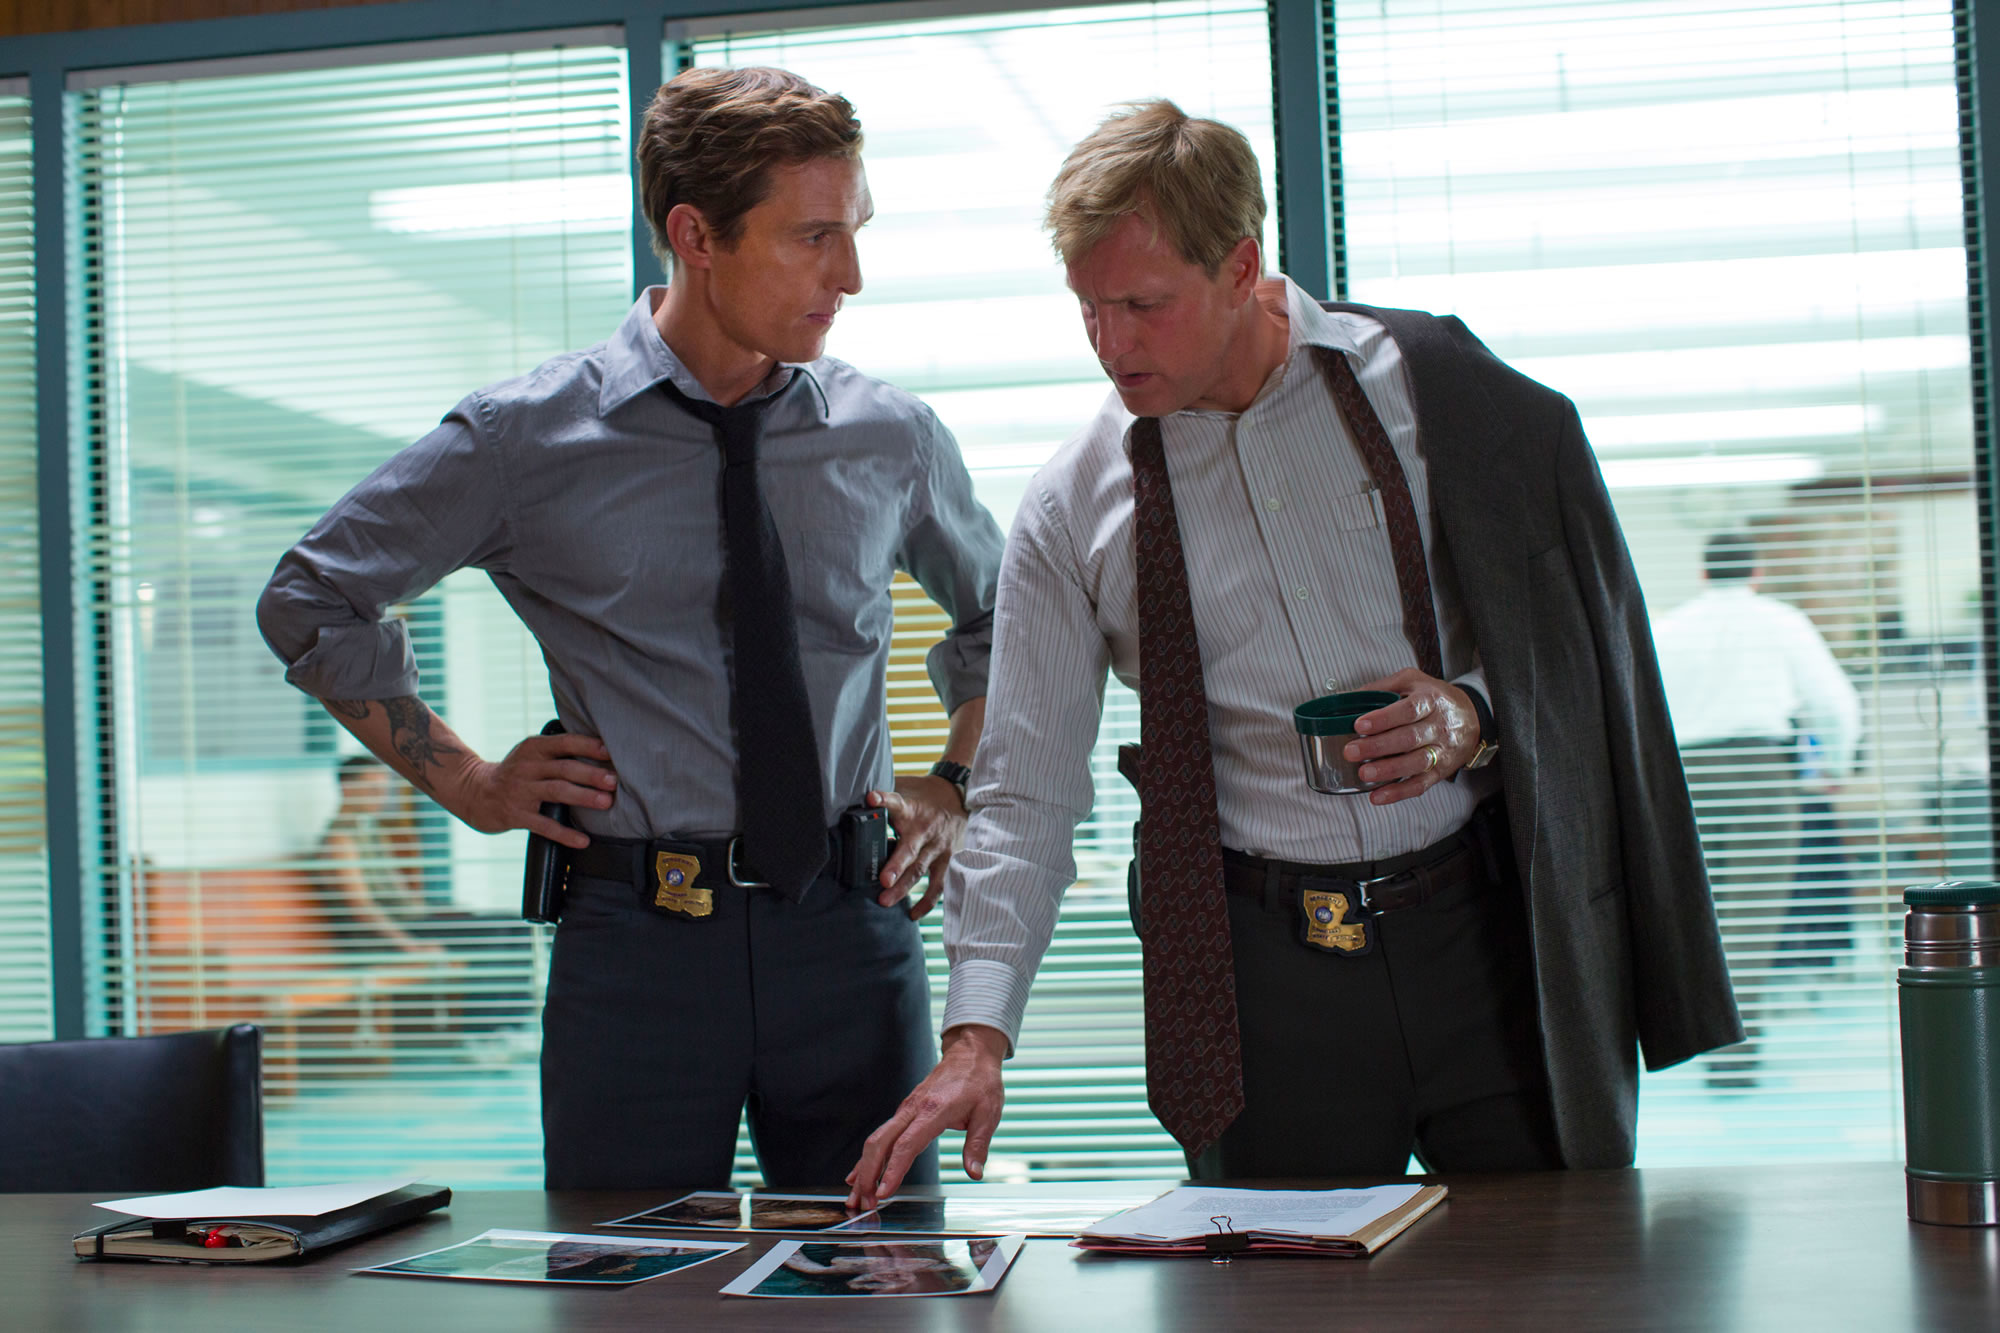 True Detective - 01x03 - The Locked Room